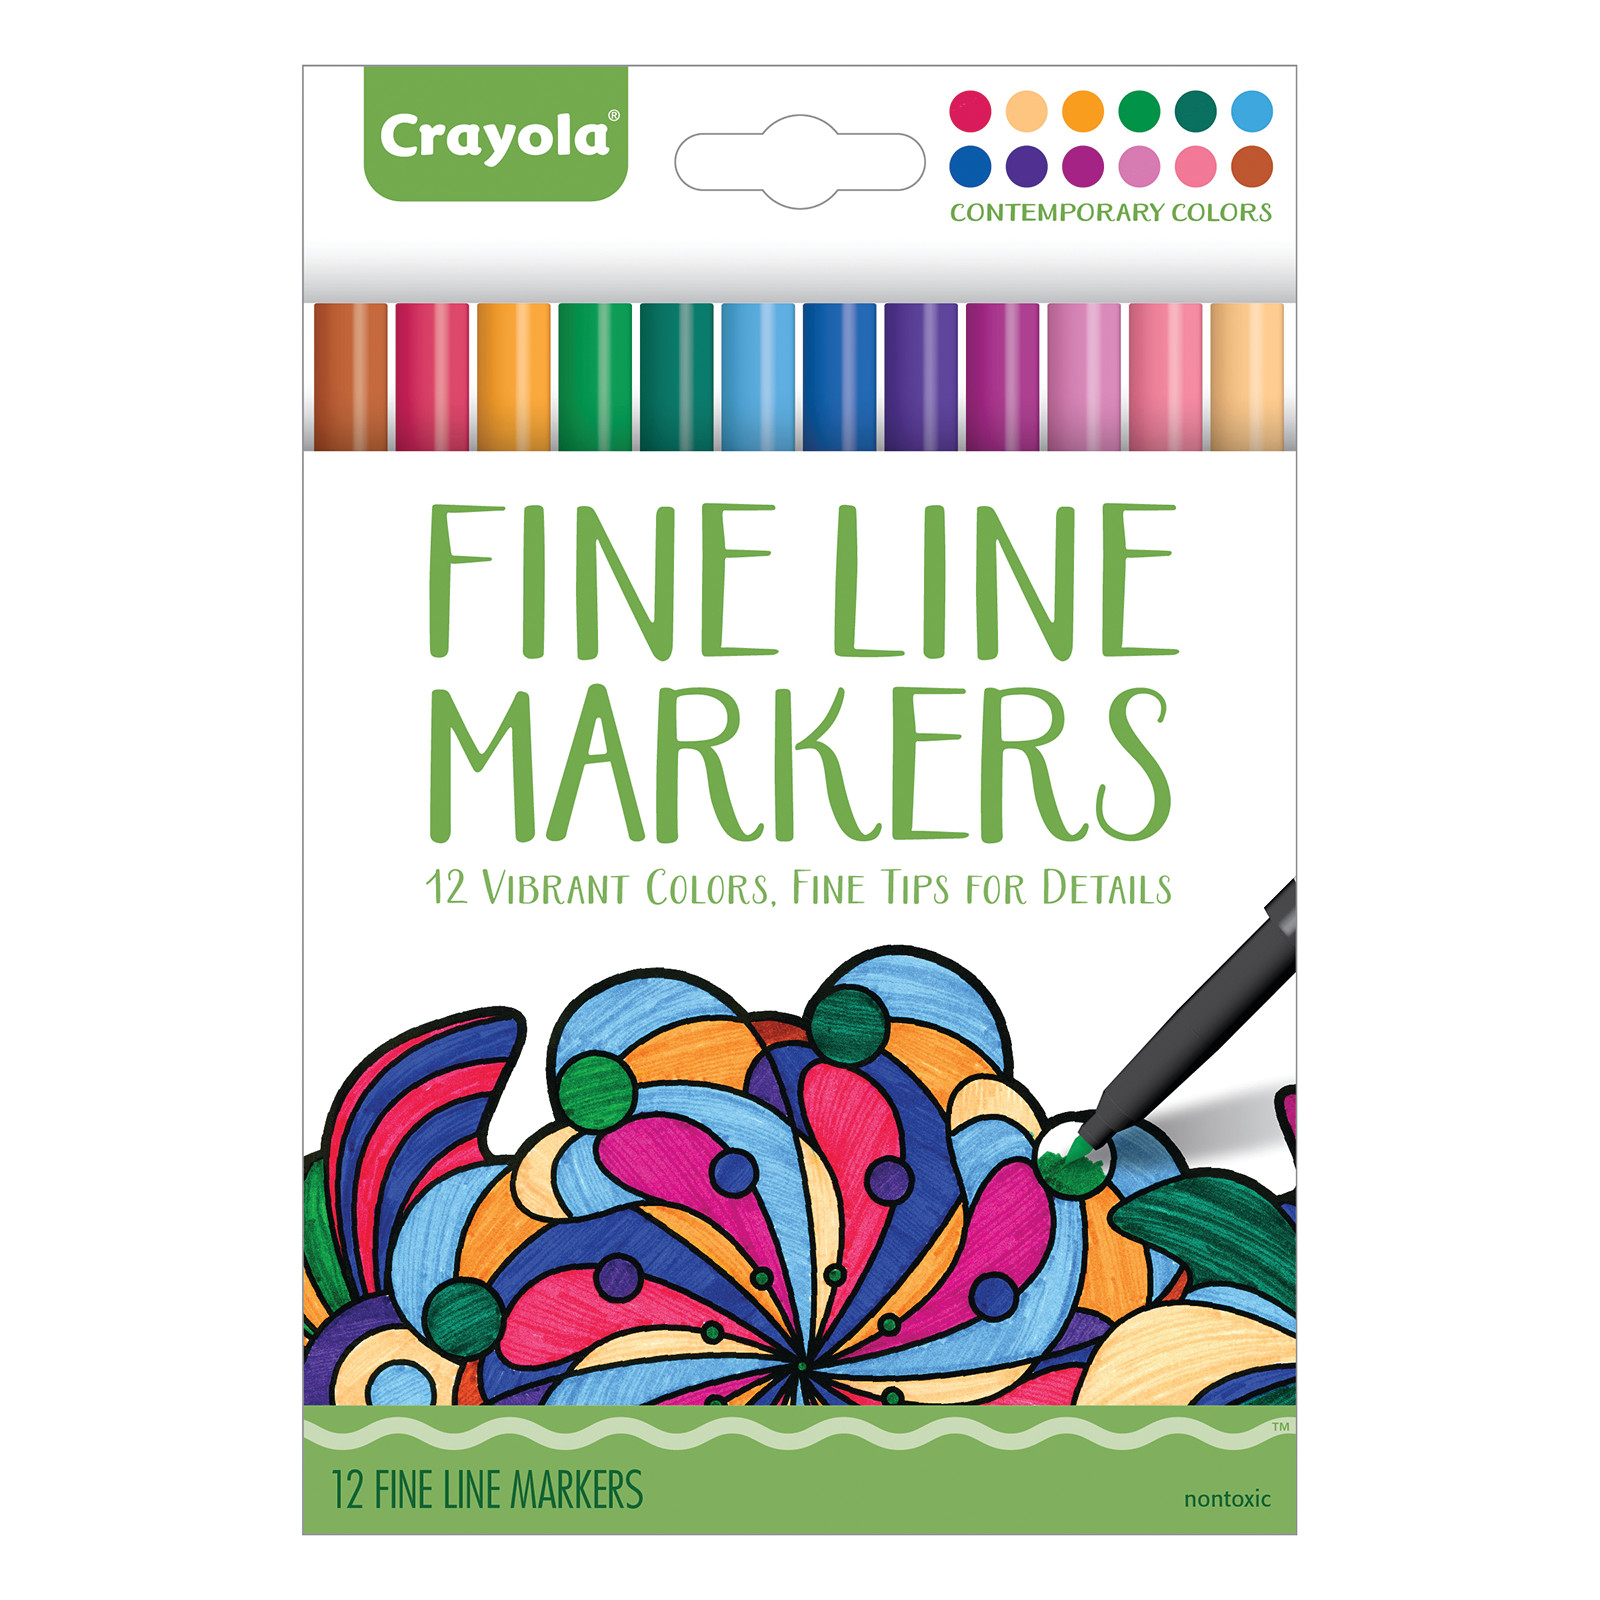 Crayola Aged Up Coloring Fineline Marker Set, 12-Colors, Rich Colors